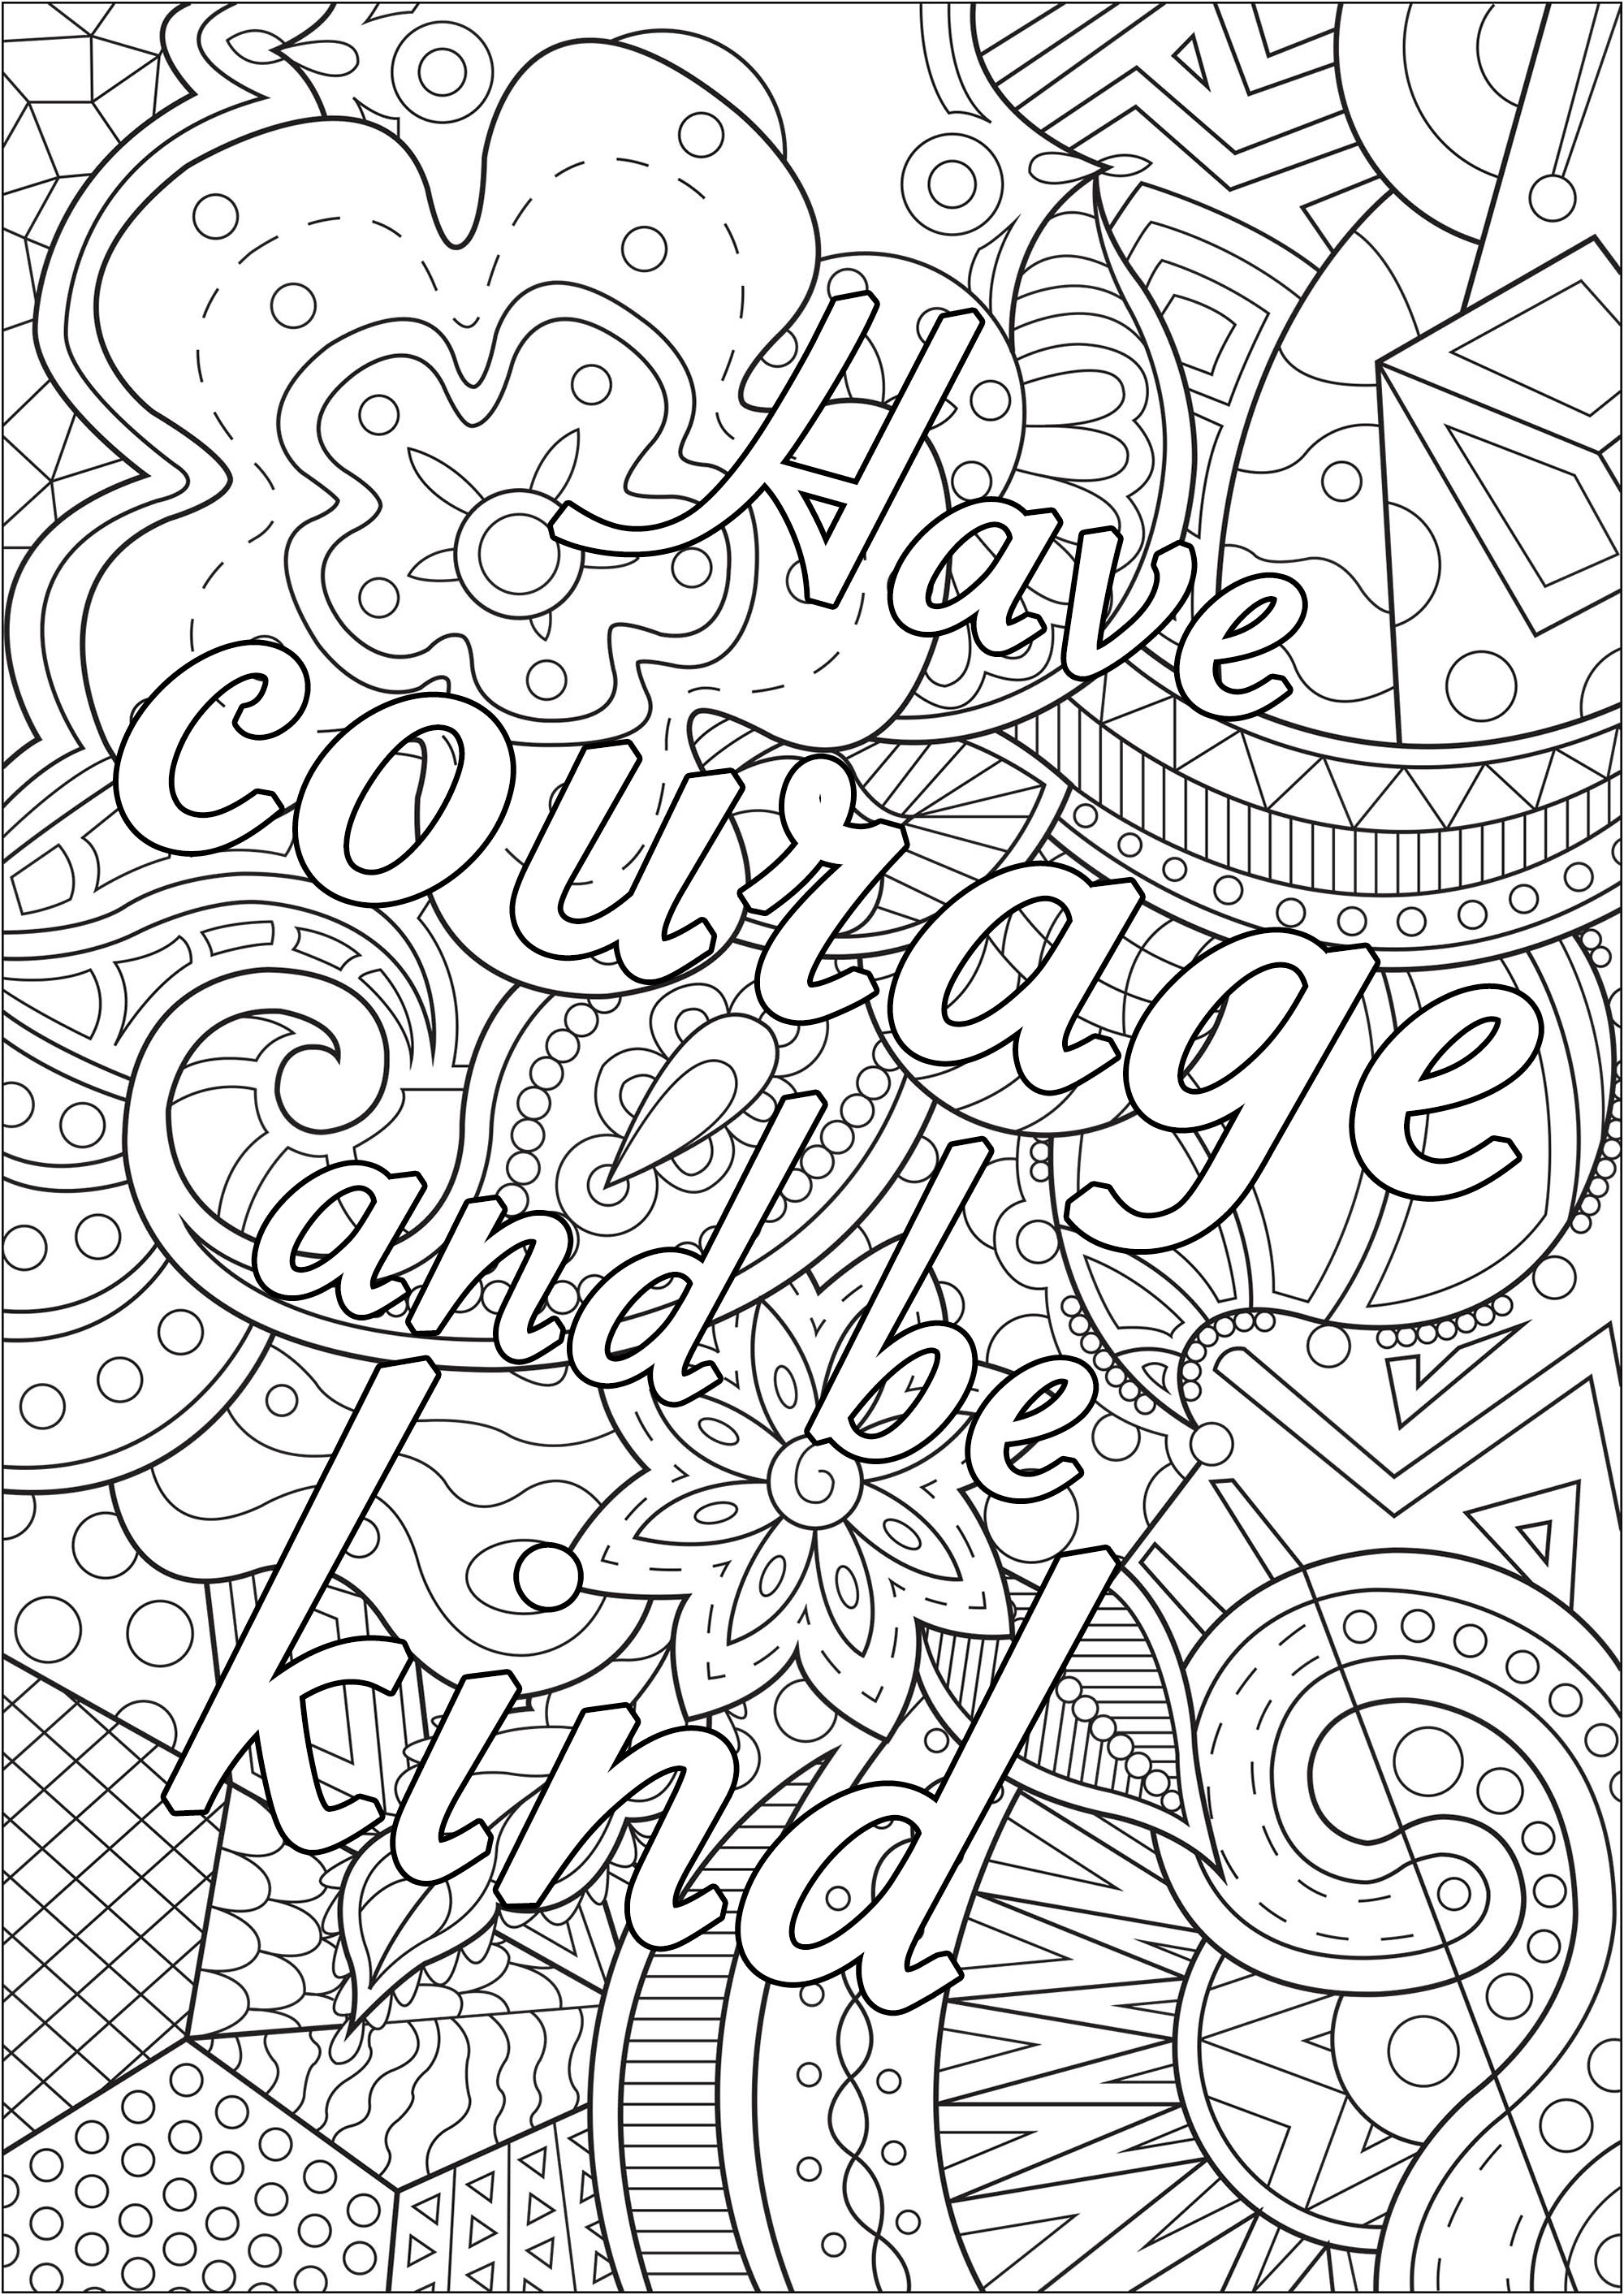 Have Courage And Be Kind Positive Inspiring Quotes Adult Coloring Pages